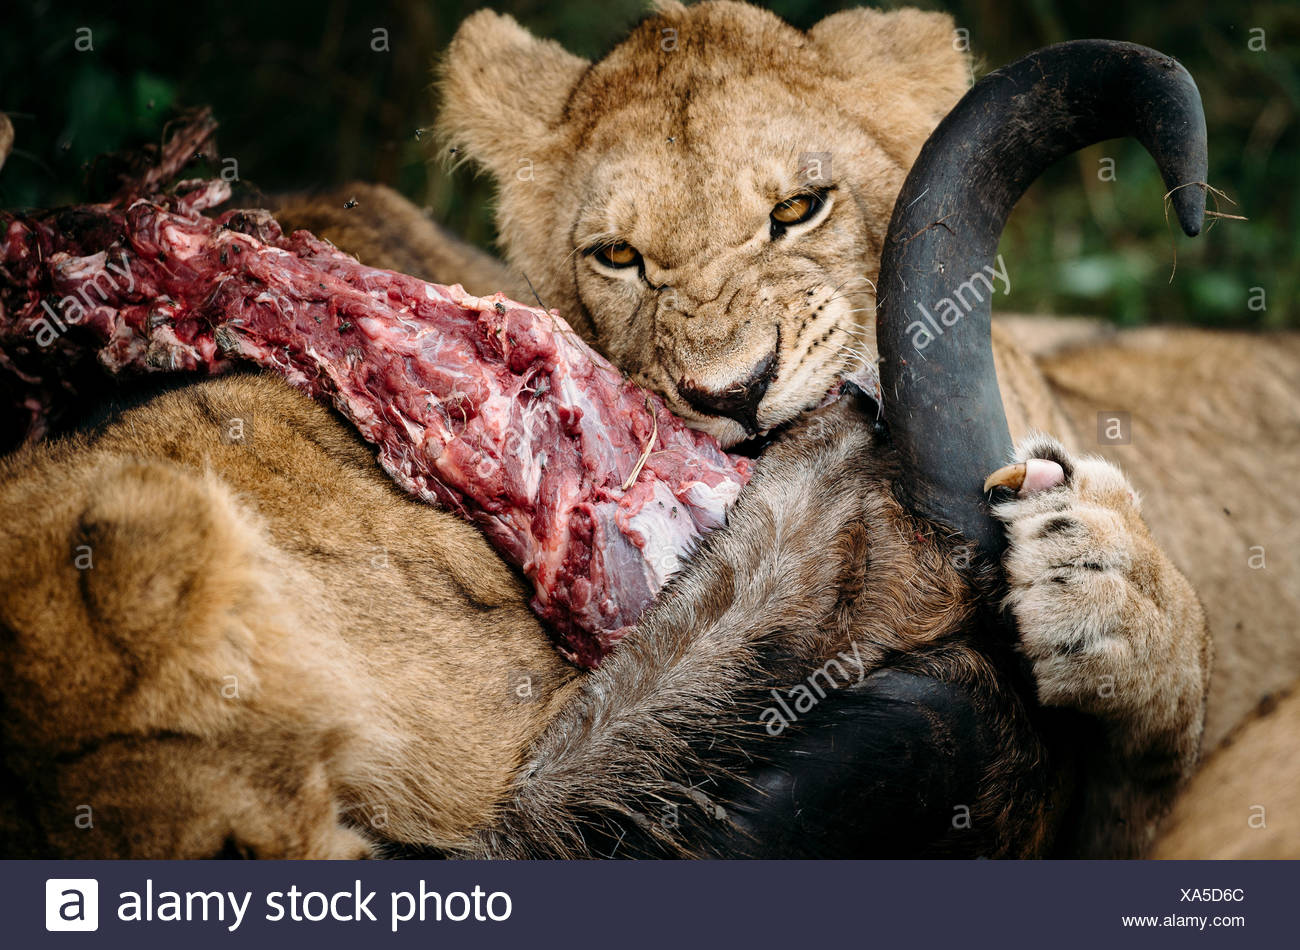 A young lion, Panthera leo, on a wildebeest carcass. - Stock Image